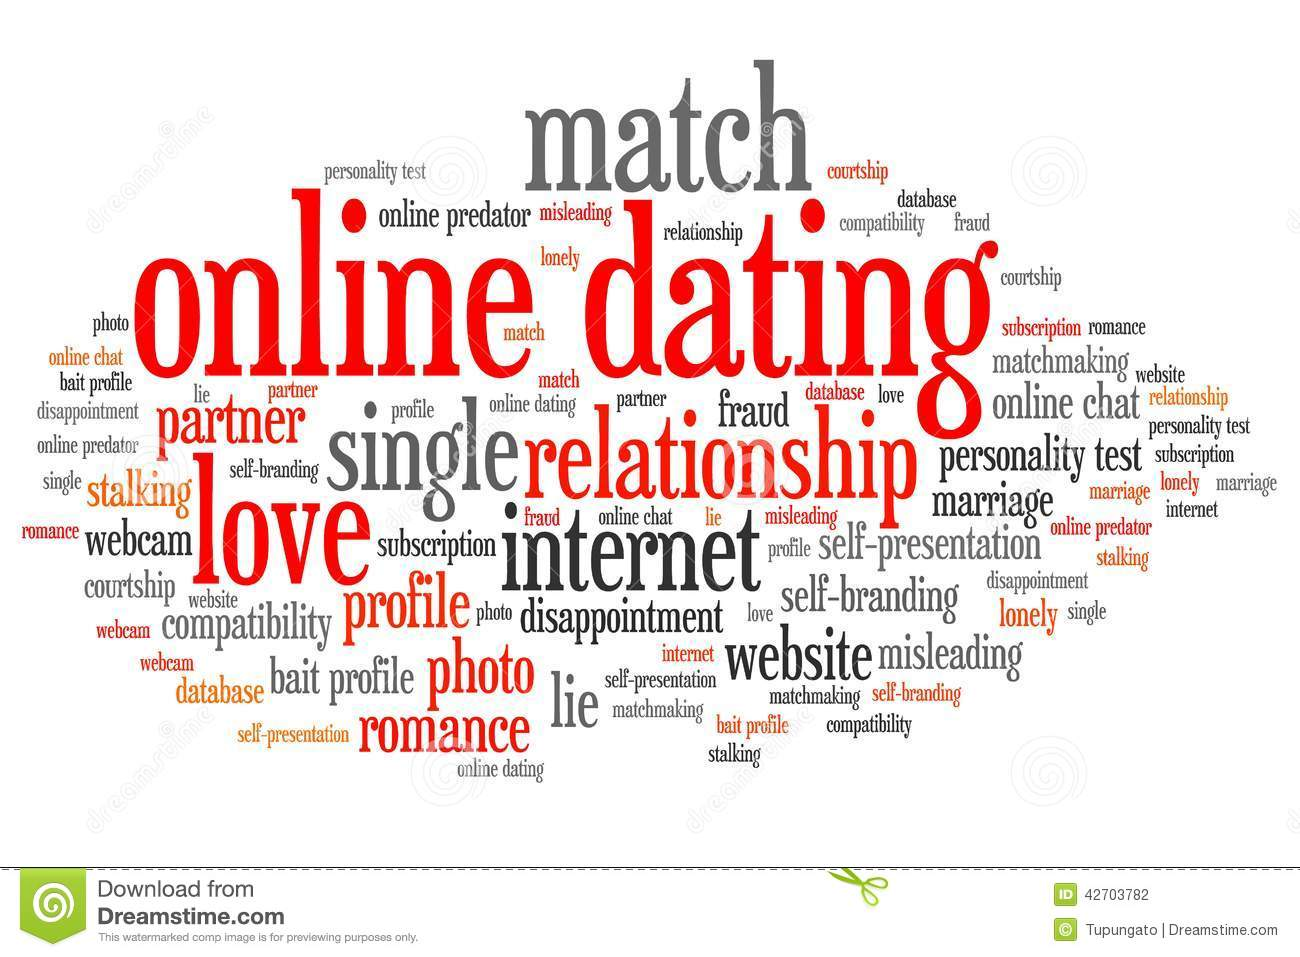 Online dating profiles most alluring words revealed by scientists